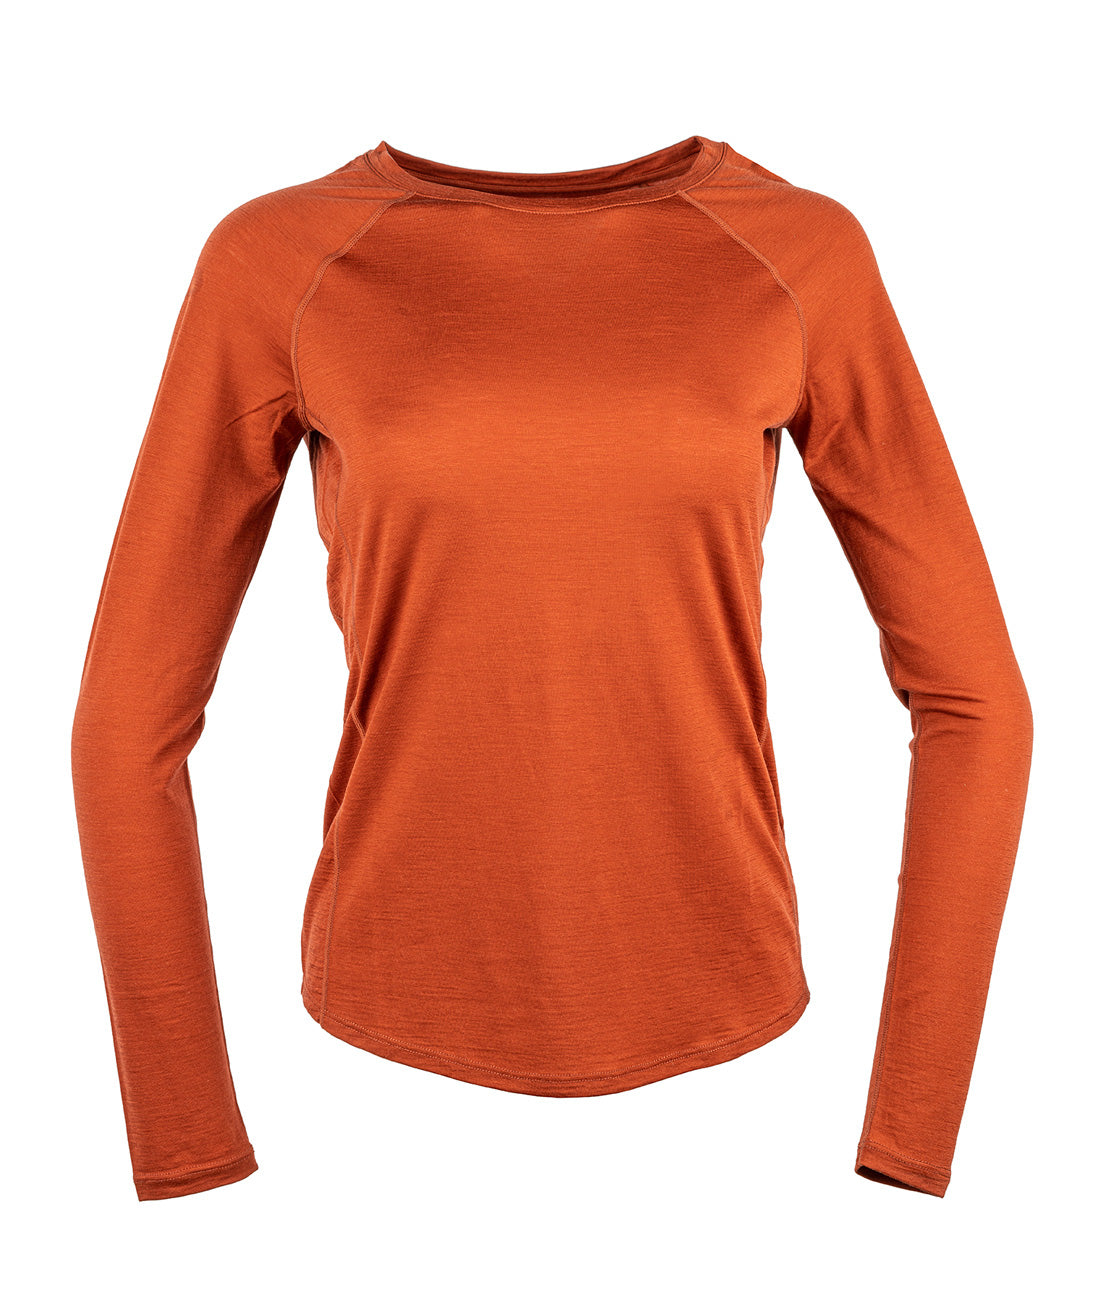 Women's Apex Merino Tech T-Shirt LS